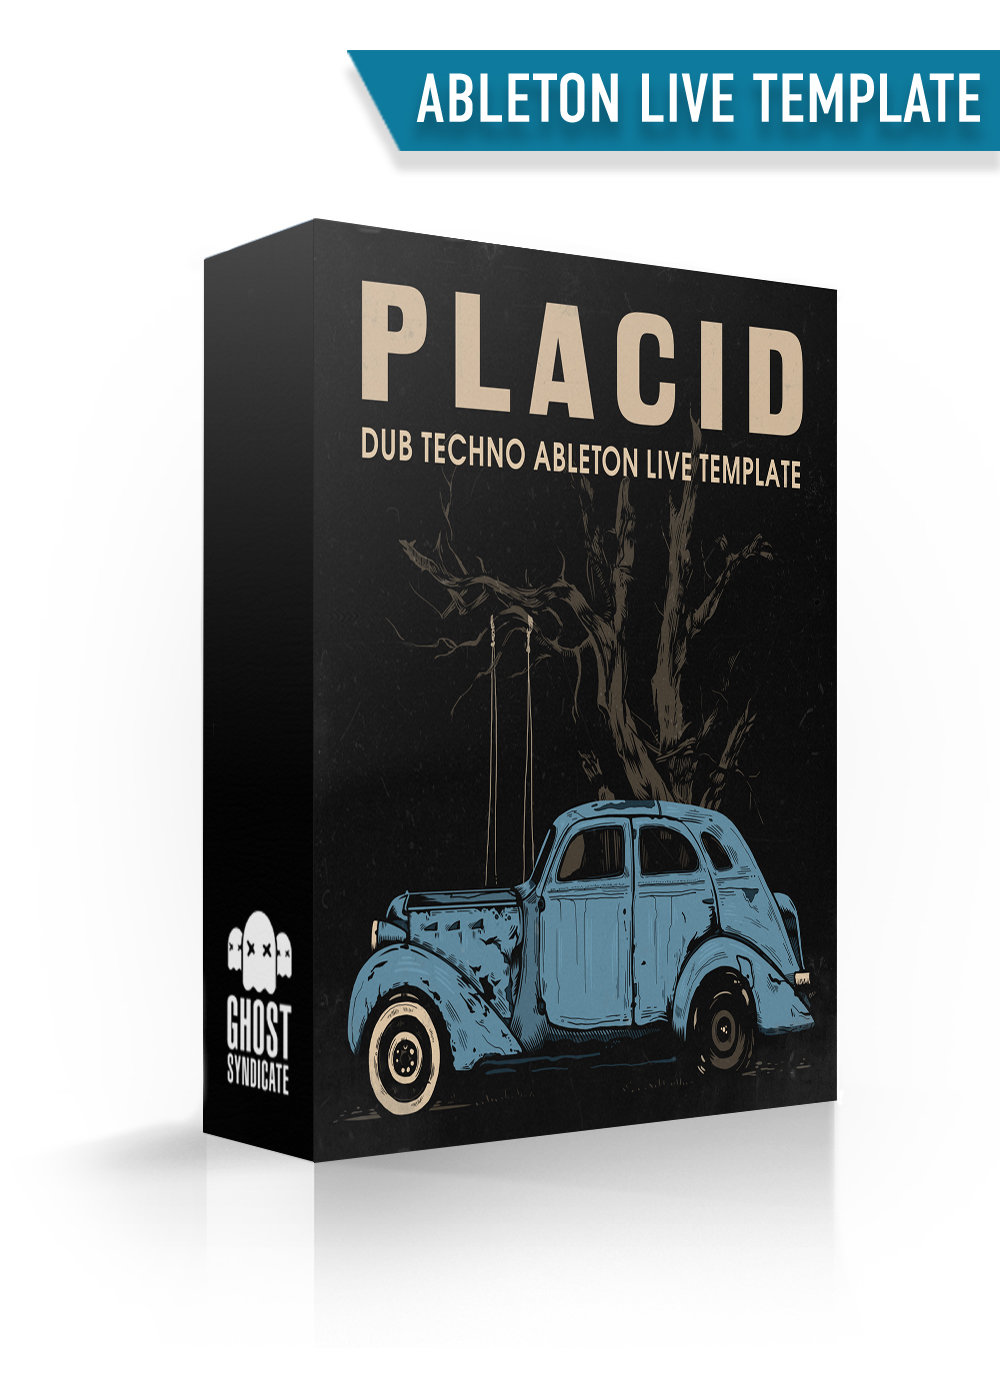 PLACID • DUB TECHNO ABLETON LIVE TEMPLATE 00040